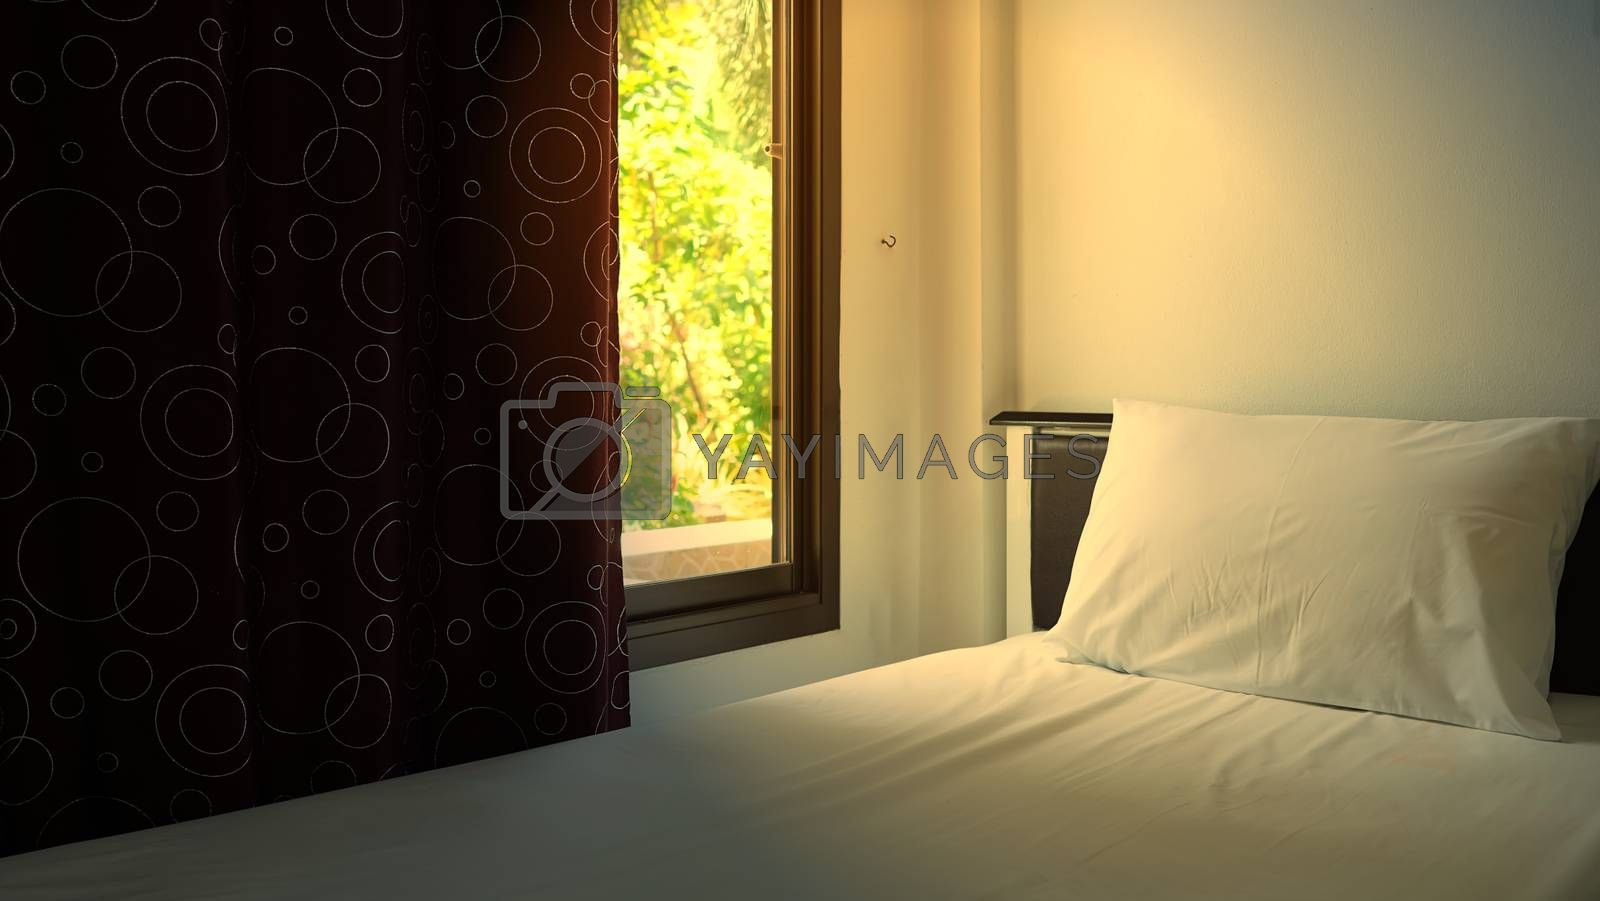 The bedroom with curtains opened to show the morning sun, the concept of refreshing for a new day.